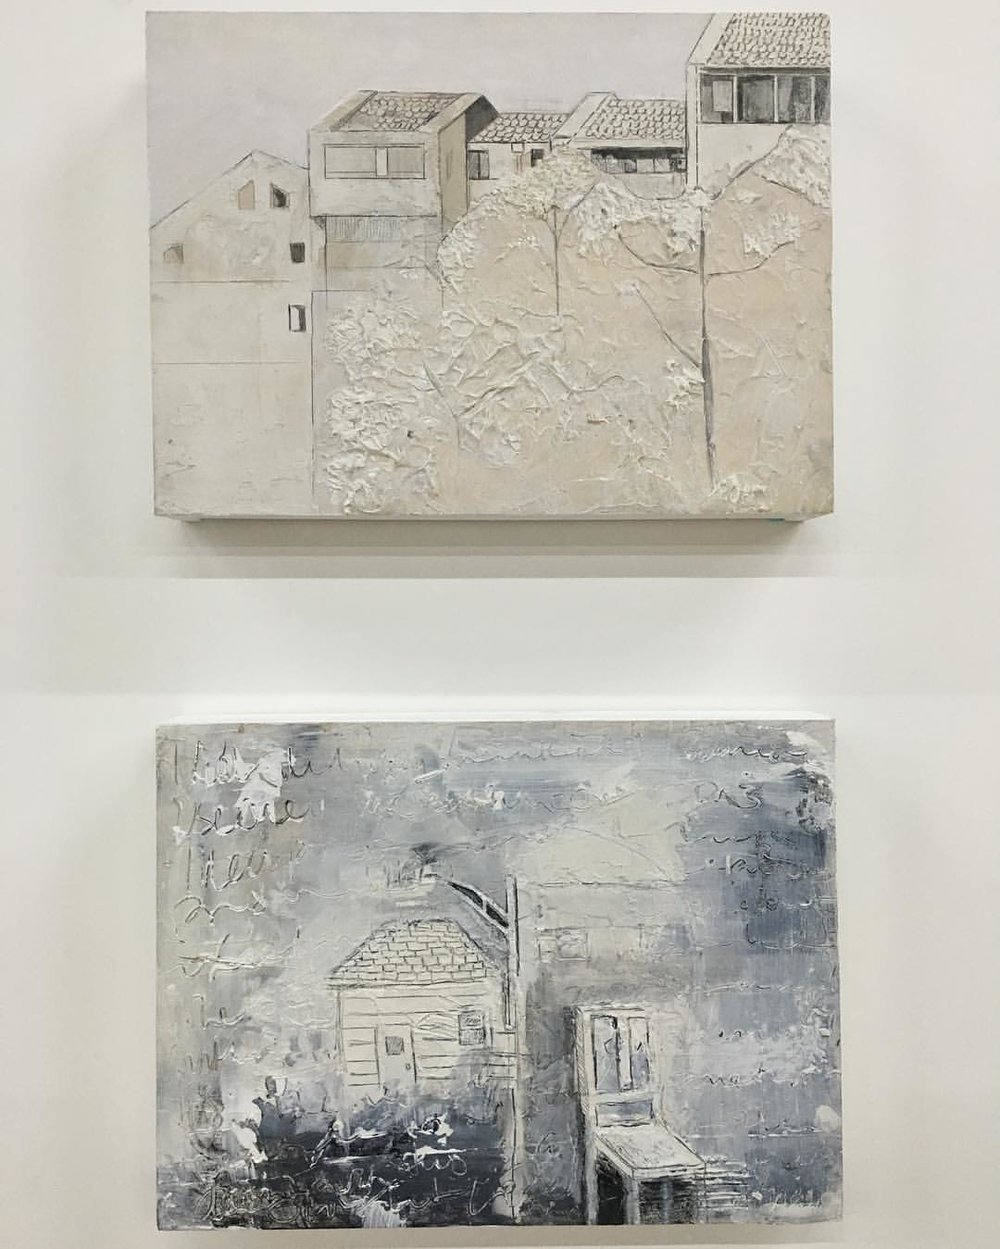 "Two of my smaller pieces that are up at our group show here in Beijing. Emerging Dialogs: A Museum Takeover @ the Dayuntang Museum. Both mixed media on panel 11"" x 9"" . . . . #academydaily #cafa #academyontheroad #MFA #111franklin #artistresidency #MFA2017 #mixedmedia #texture #architecture #china #art #galleryopening (at China, Beijing)"